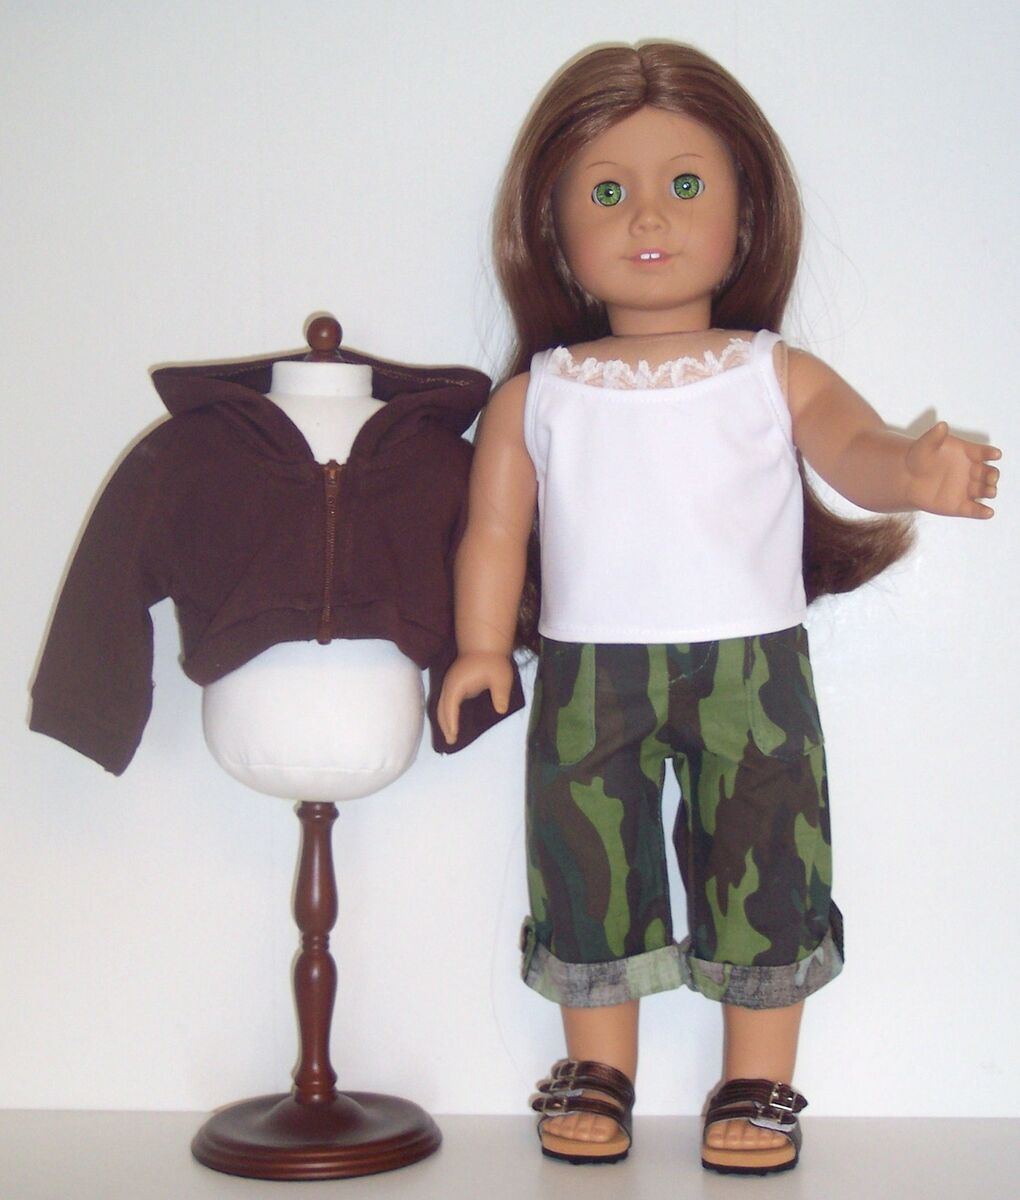 DOLL CLOTHES FITS AMERICAN GIRL CAMO CAPRIS,WHITE CAMISOLE,& BROWN